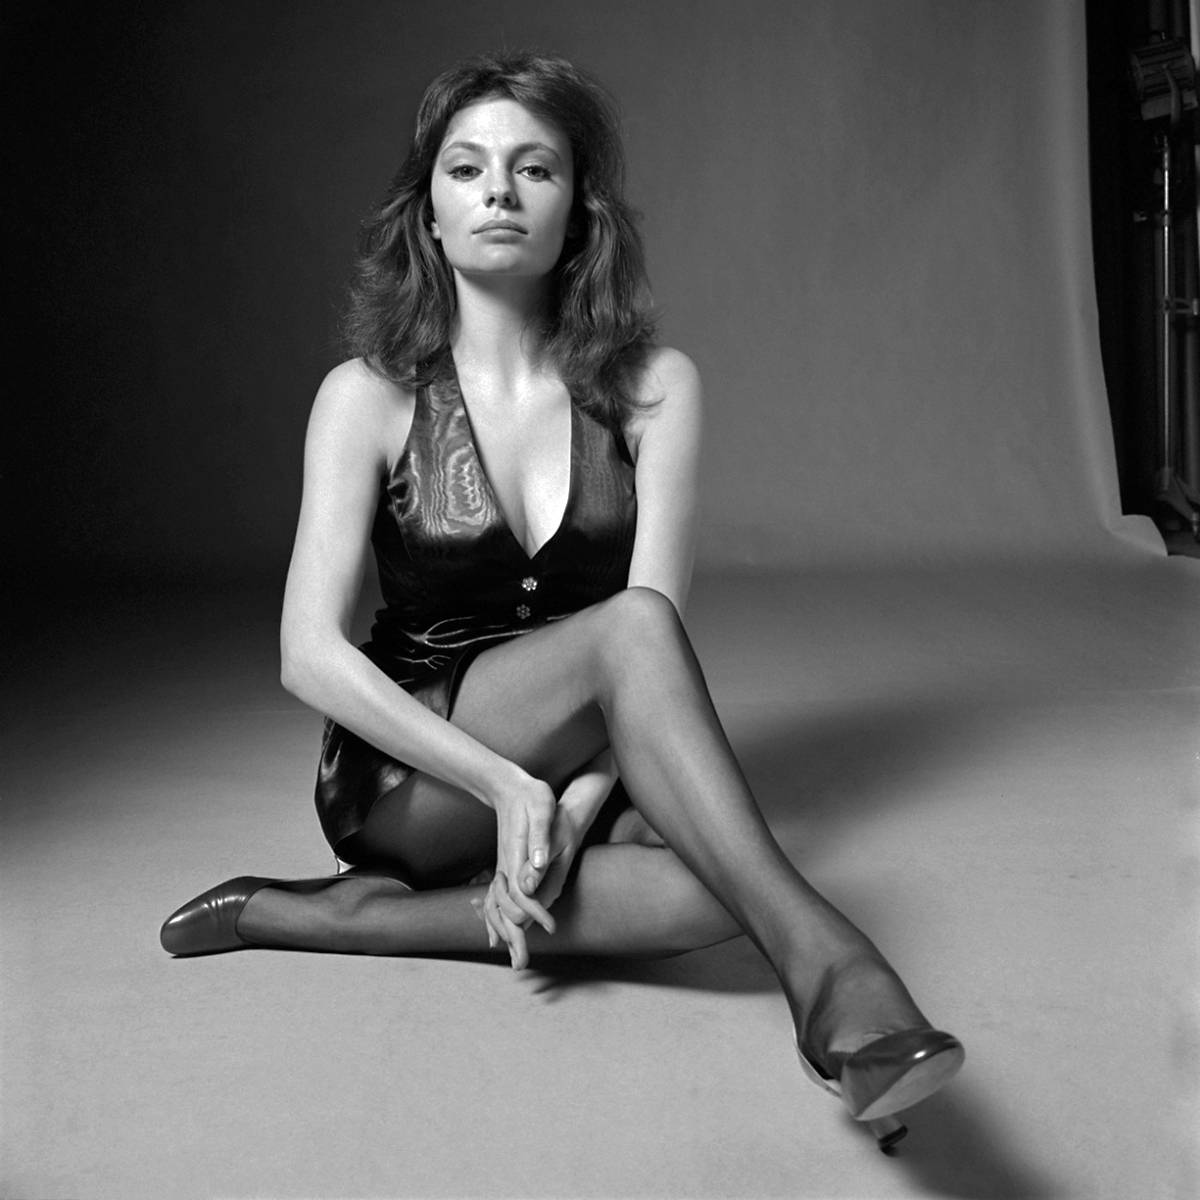 Jacqueline Bisset (born 1944) nude (94 foto and video), Pussy, Fappening, Feet, swimsuit 2019